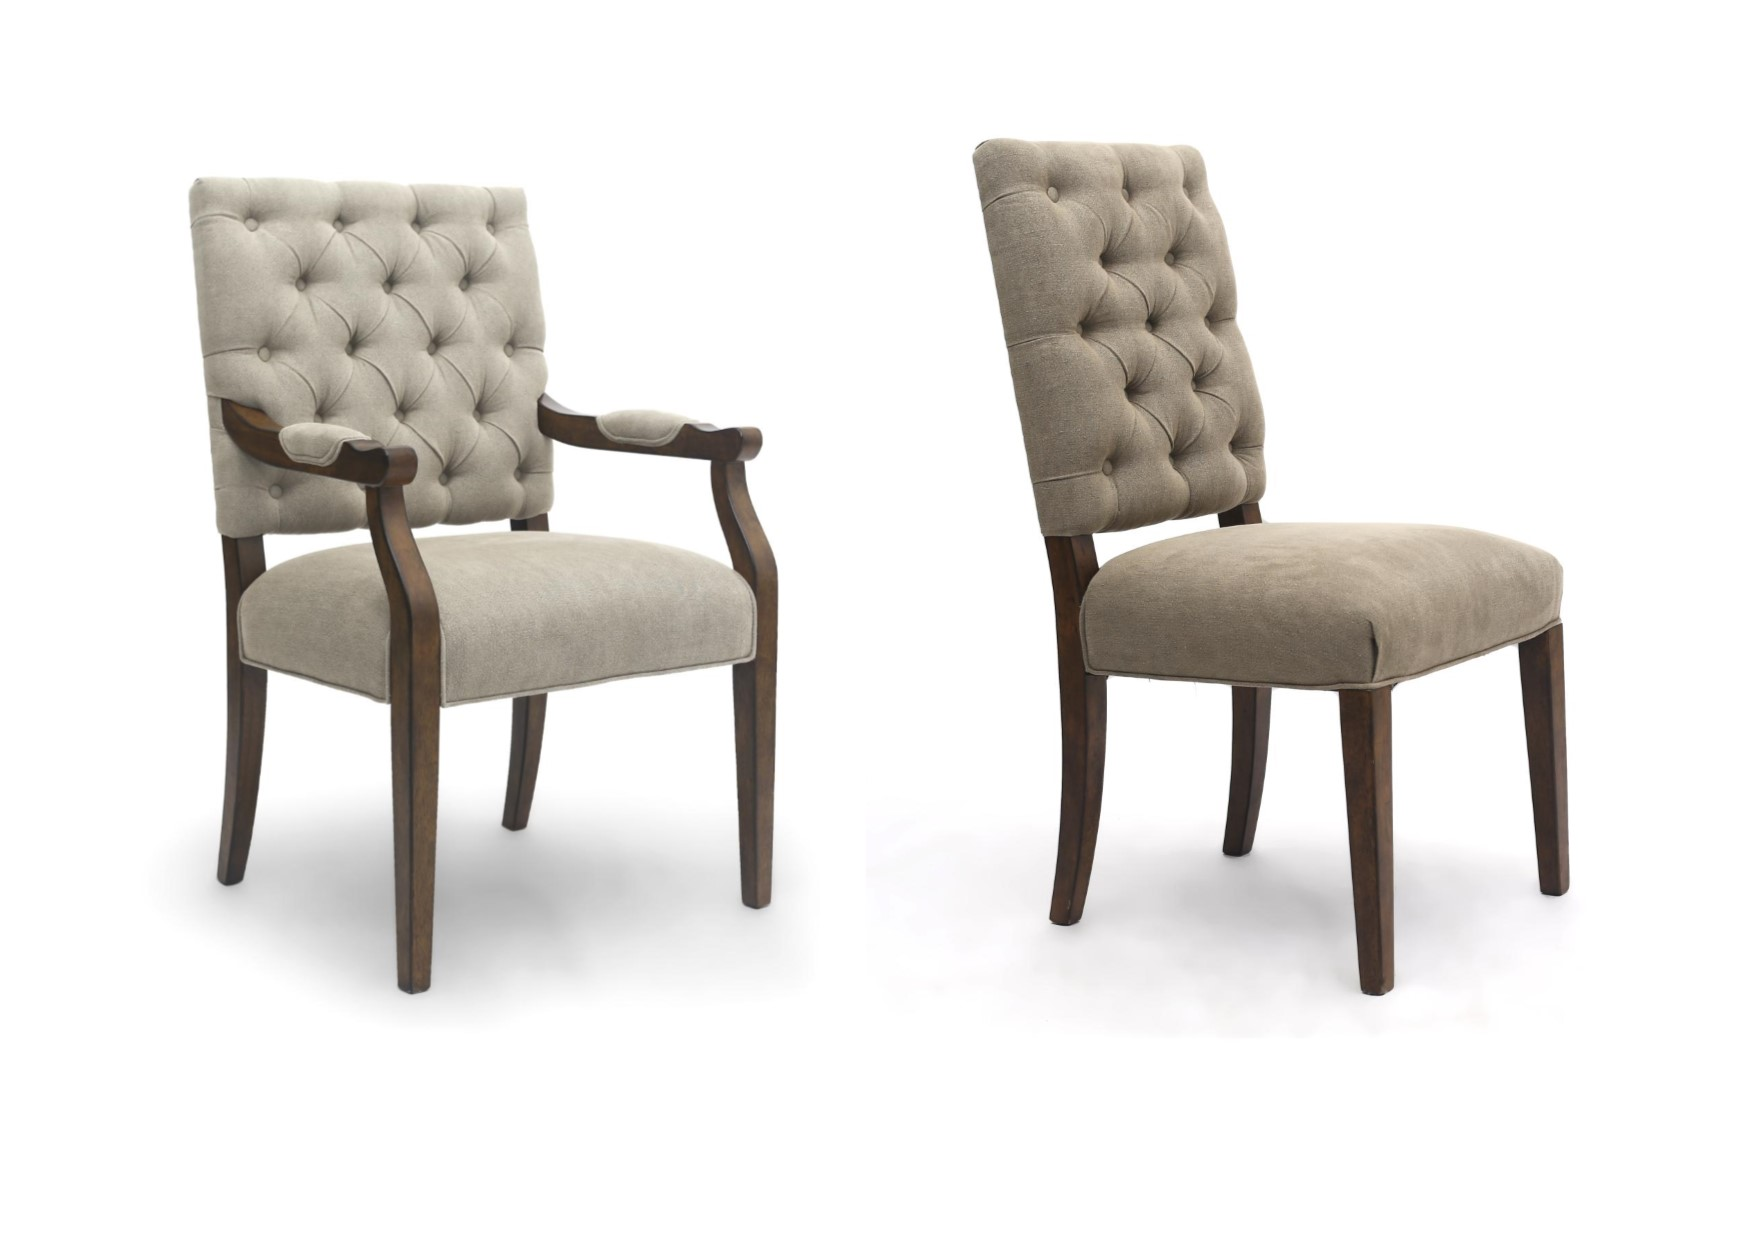 Portland Luxury Carver Chair Dining Linen Fabric On Back Natural